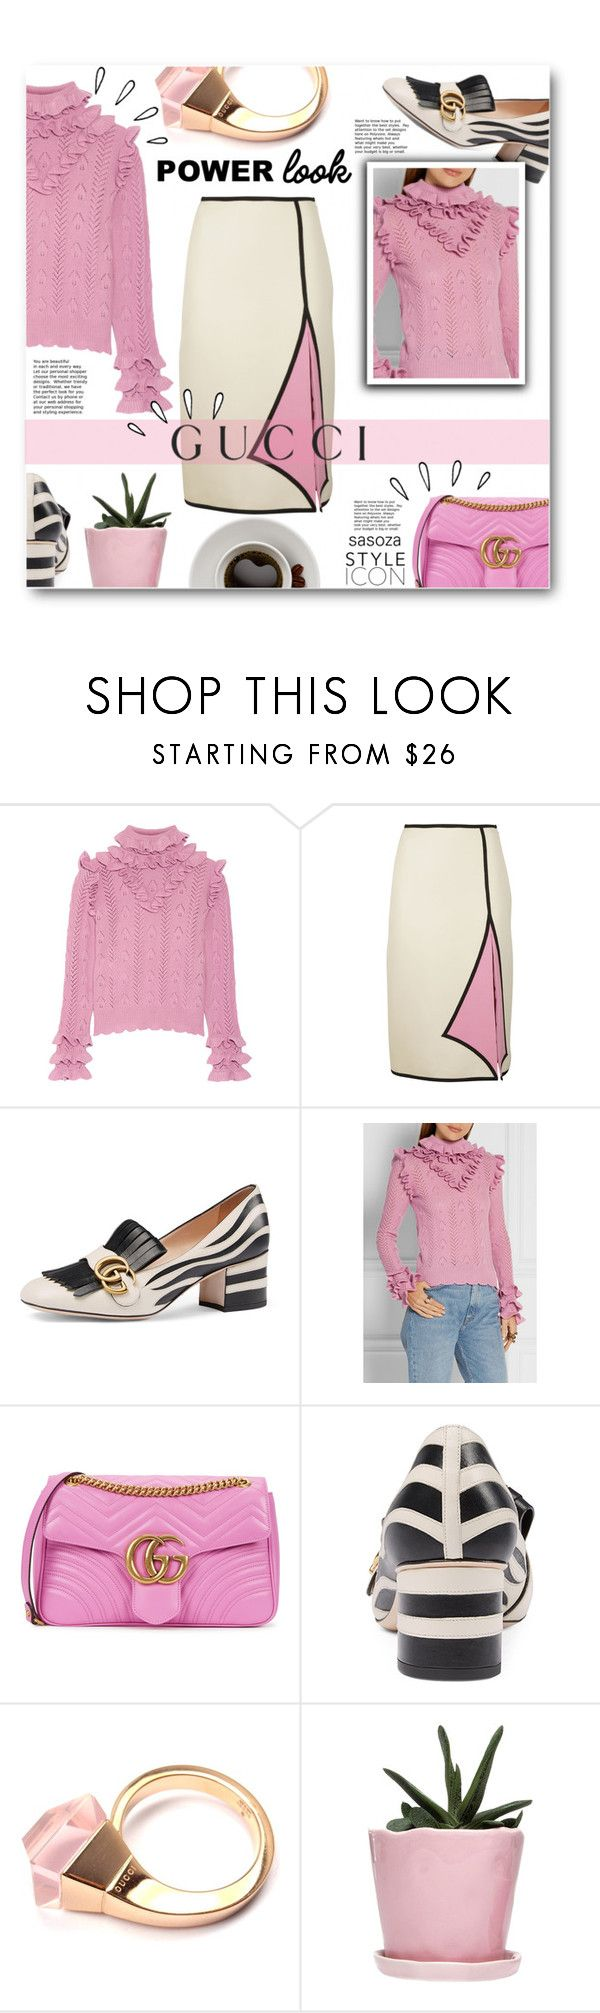 """Fall fashion 3 by Sasaza"" by sasooza ❤ liked on Polyvore featuring Gucci, Old Navy and Dot & Bo"